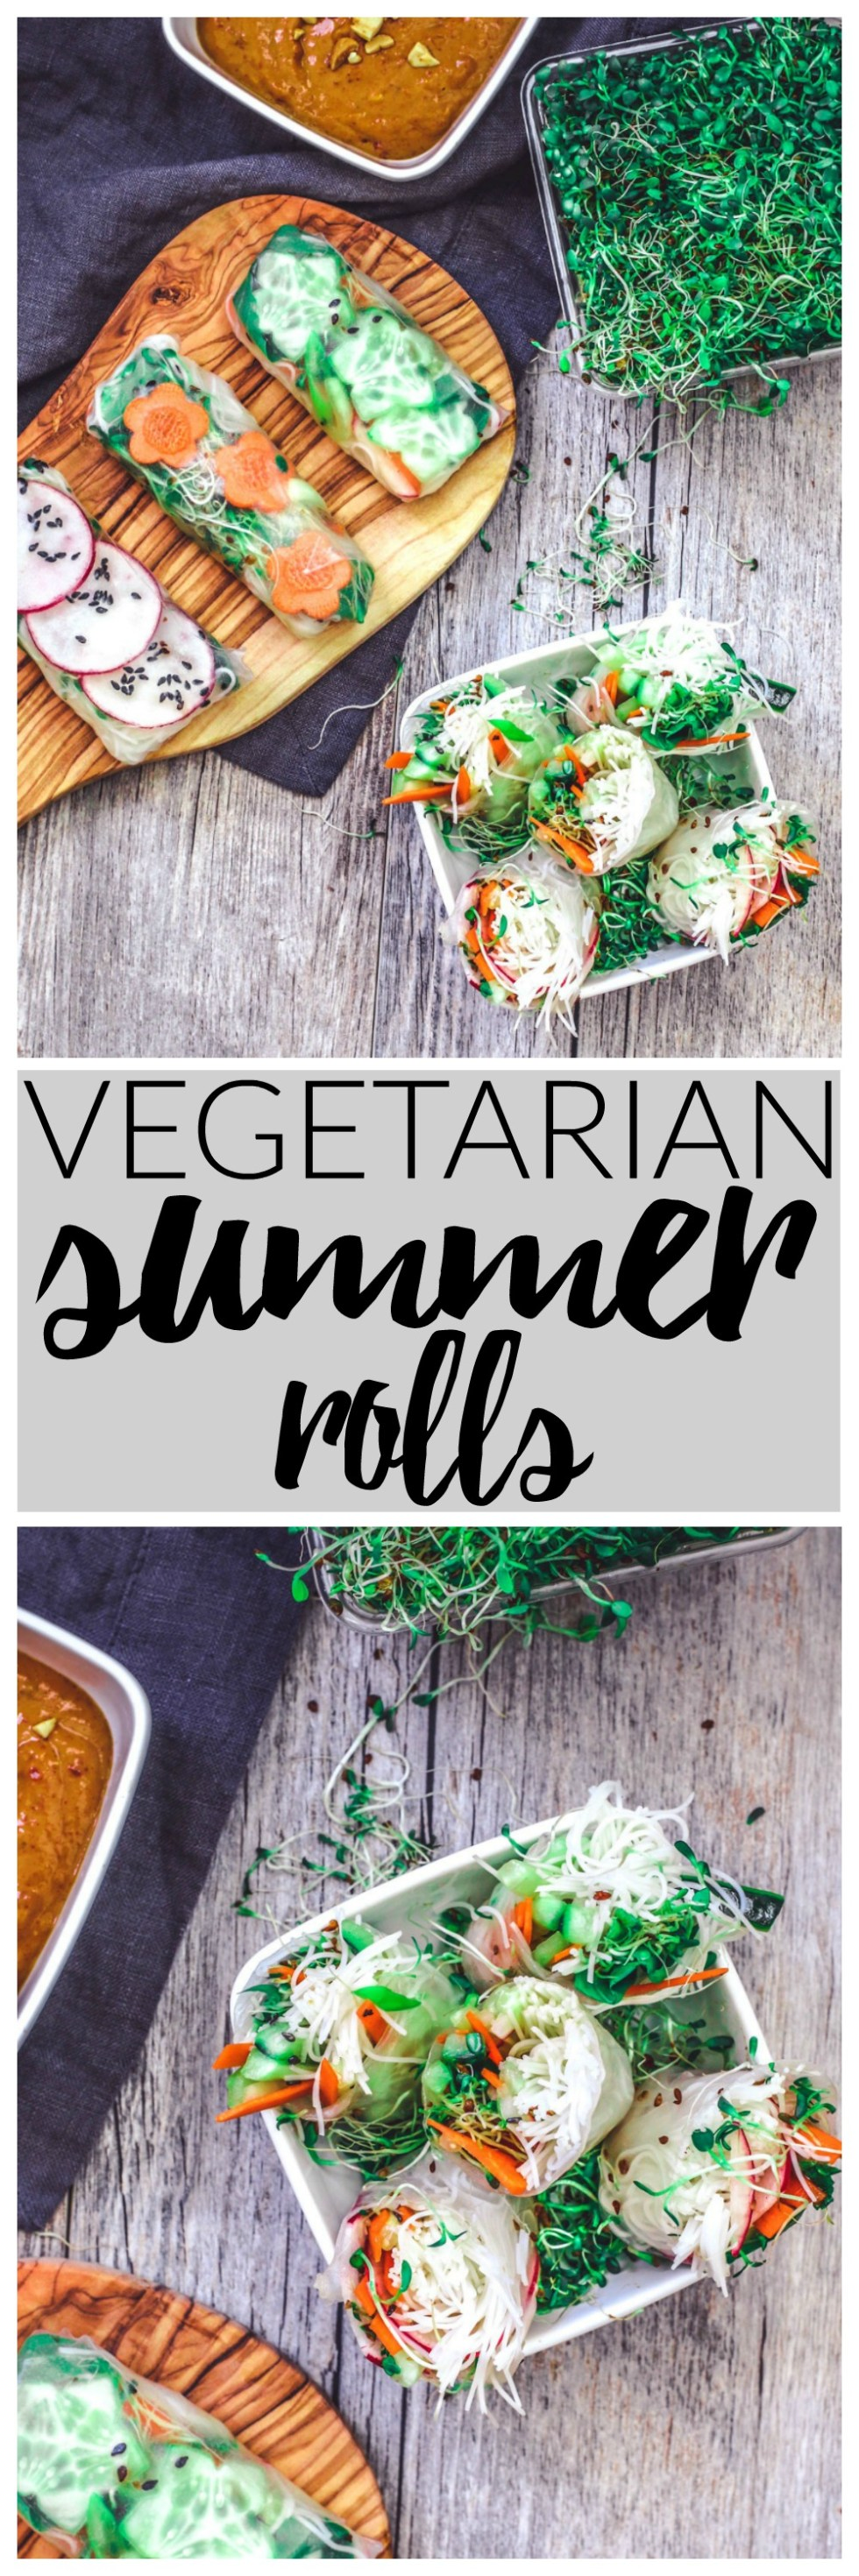 Vegetarian Summer Rolls With Spicy Peanut Sauce | Killing Thyme — These refreshing AF summer rolls are full of crisp veggies and are especially delish when dunked into spicy peanut sauce!